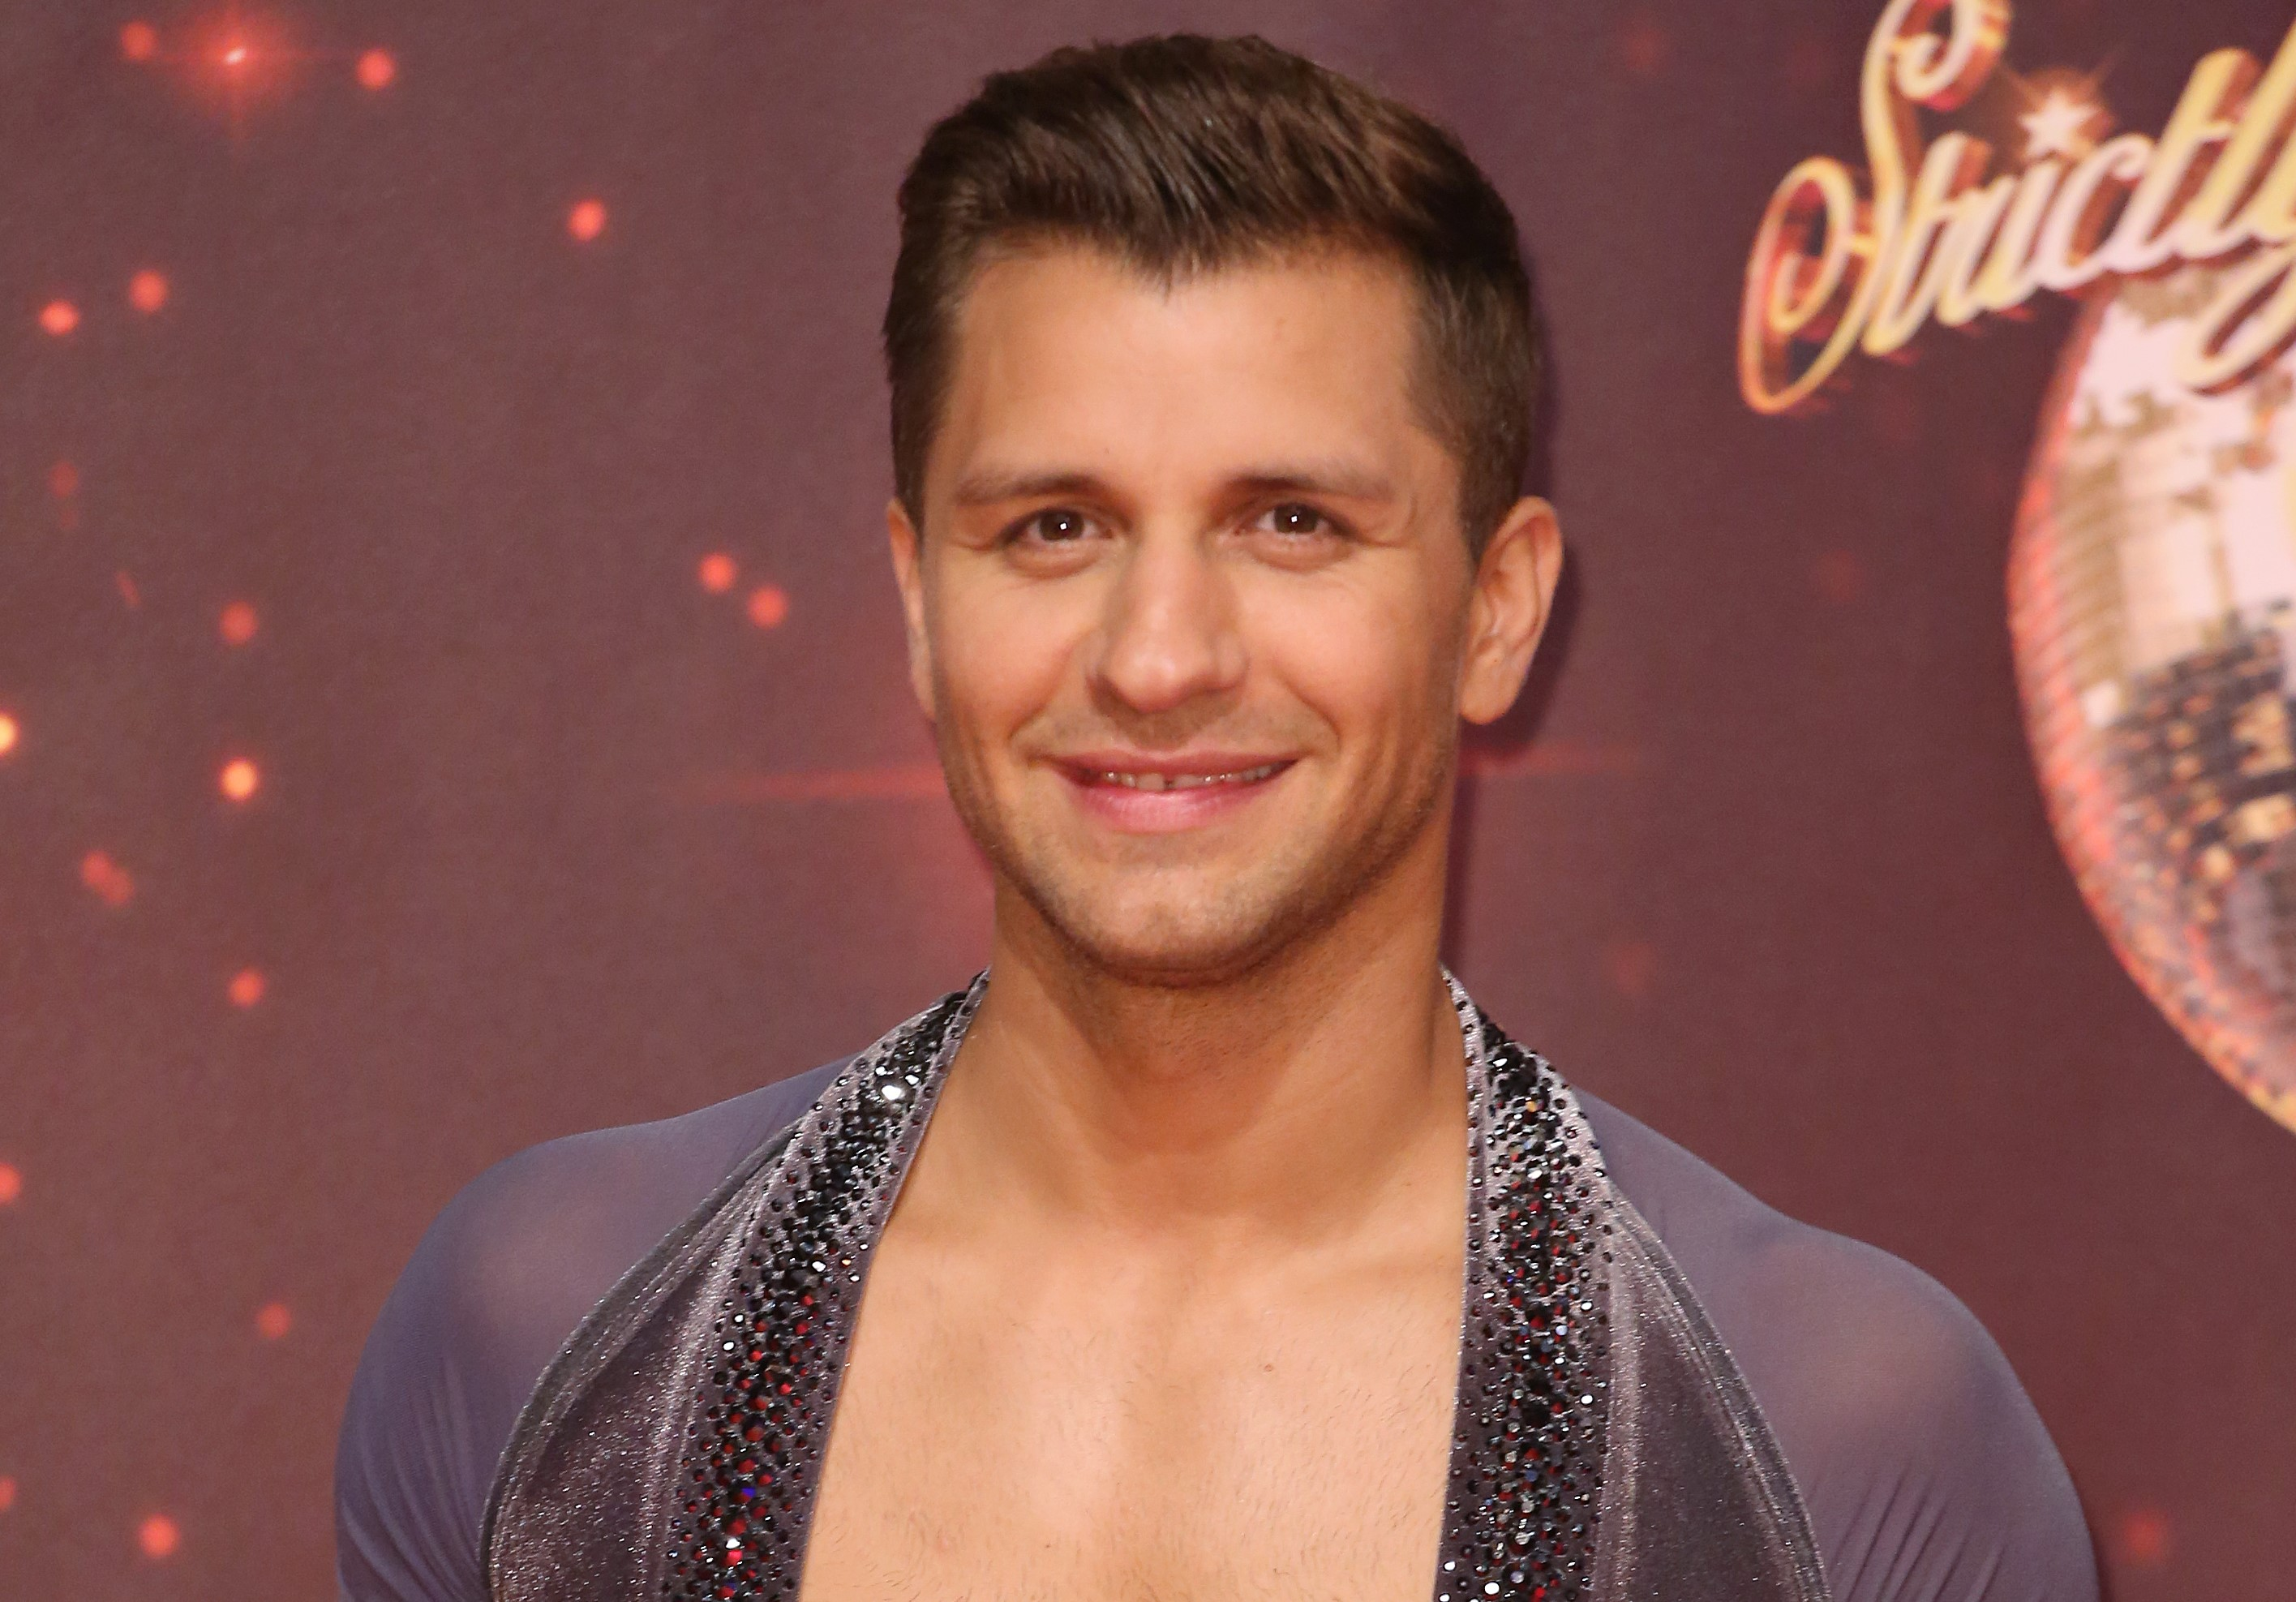 Strictly fans beg bosses to replace Pasha Kovalev with Neil Jones